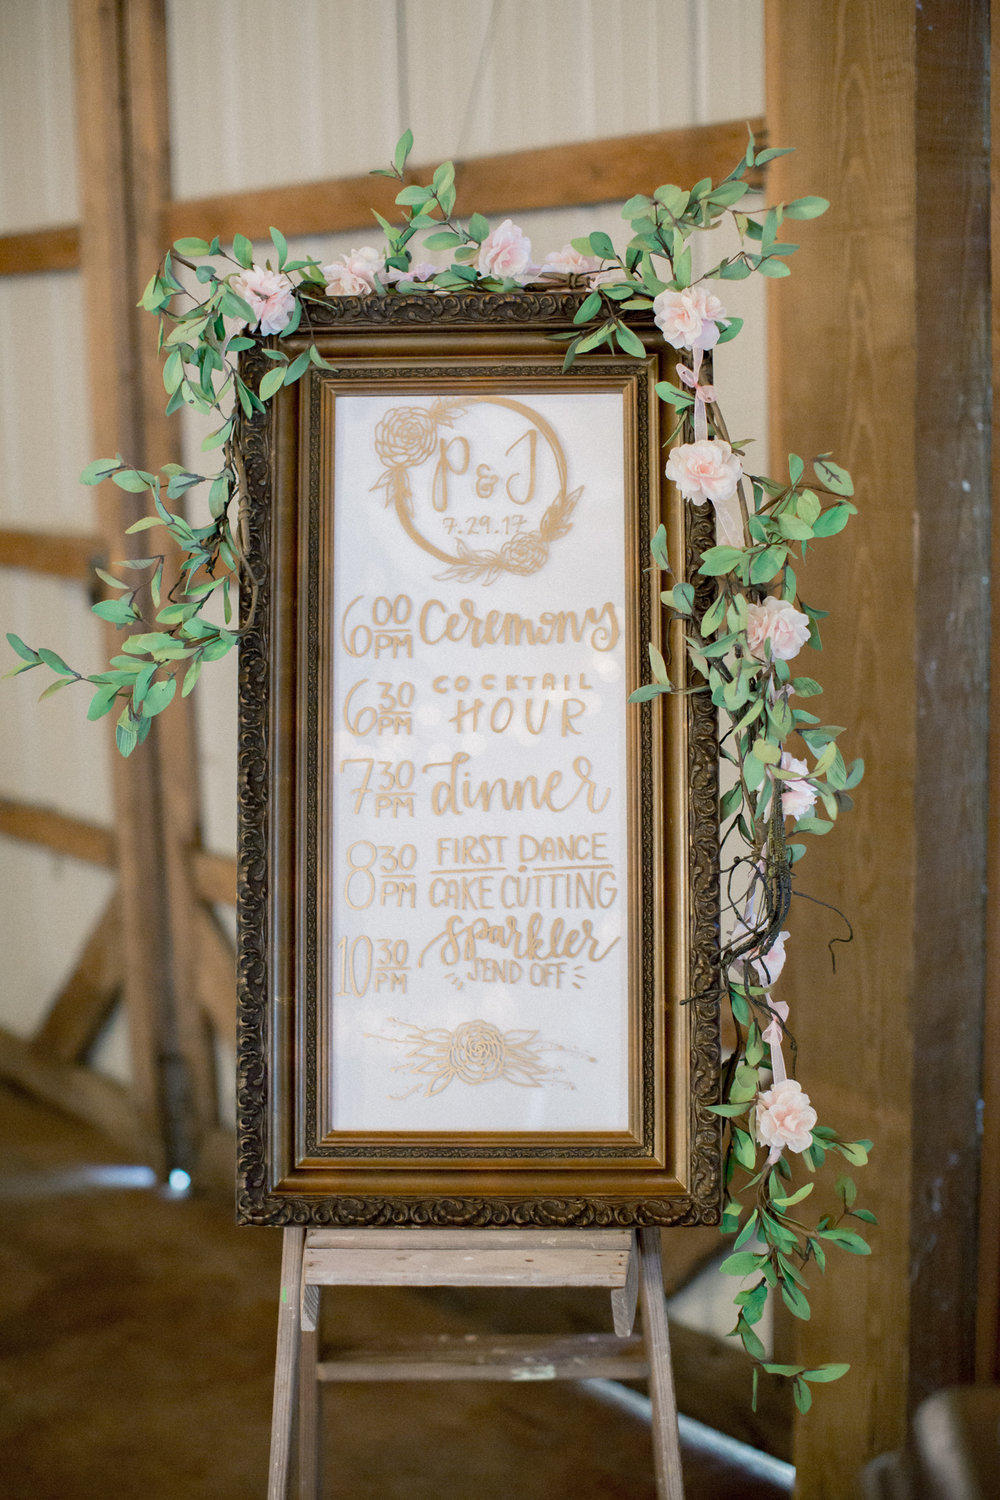 farmatbrusharborwedding-2844.jpg